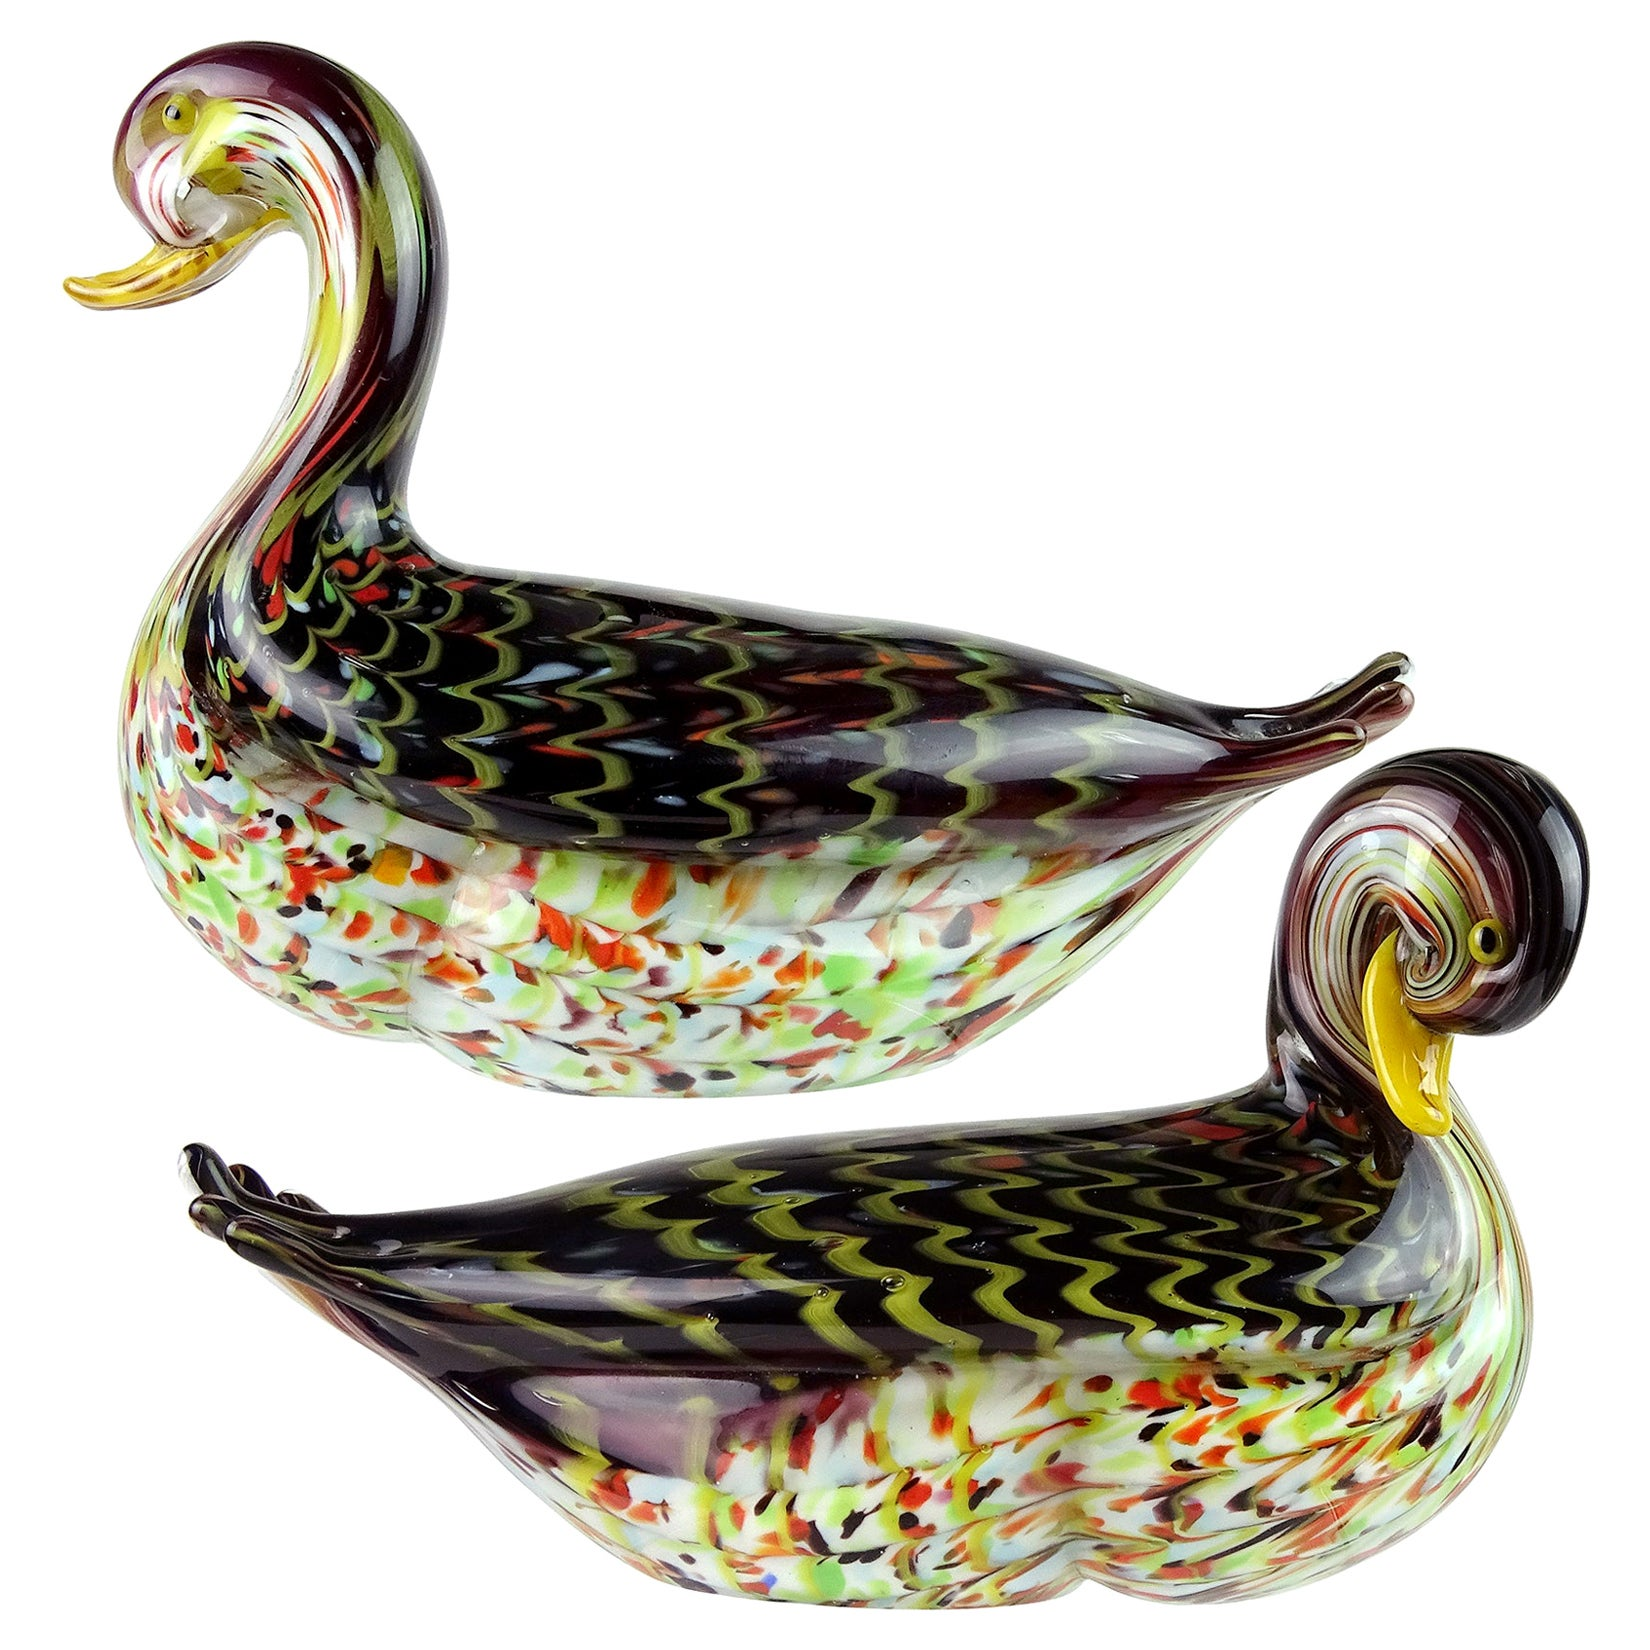 Murano Pulled Feather Design Italian Art Glass Male Female Duck Sculptures